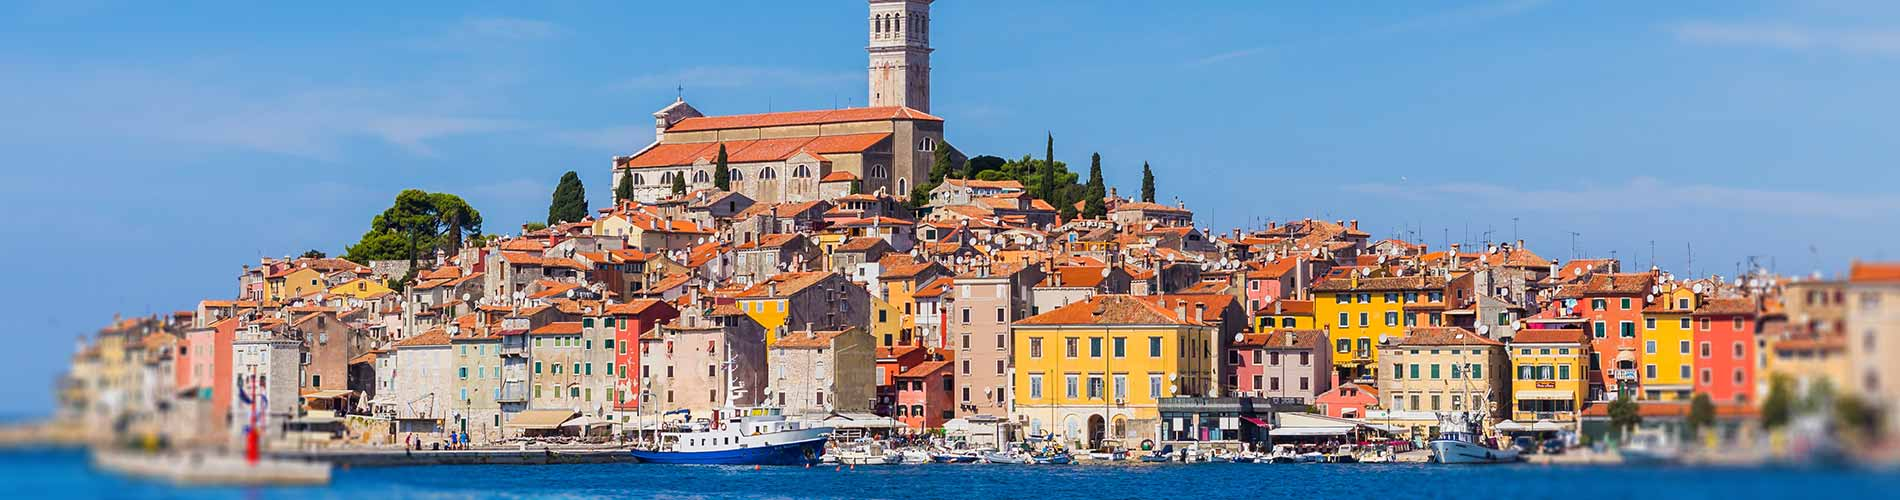 Rovinj from the sea.jpg